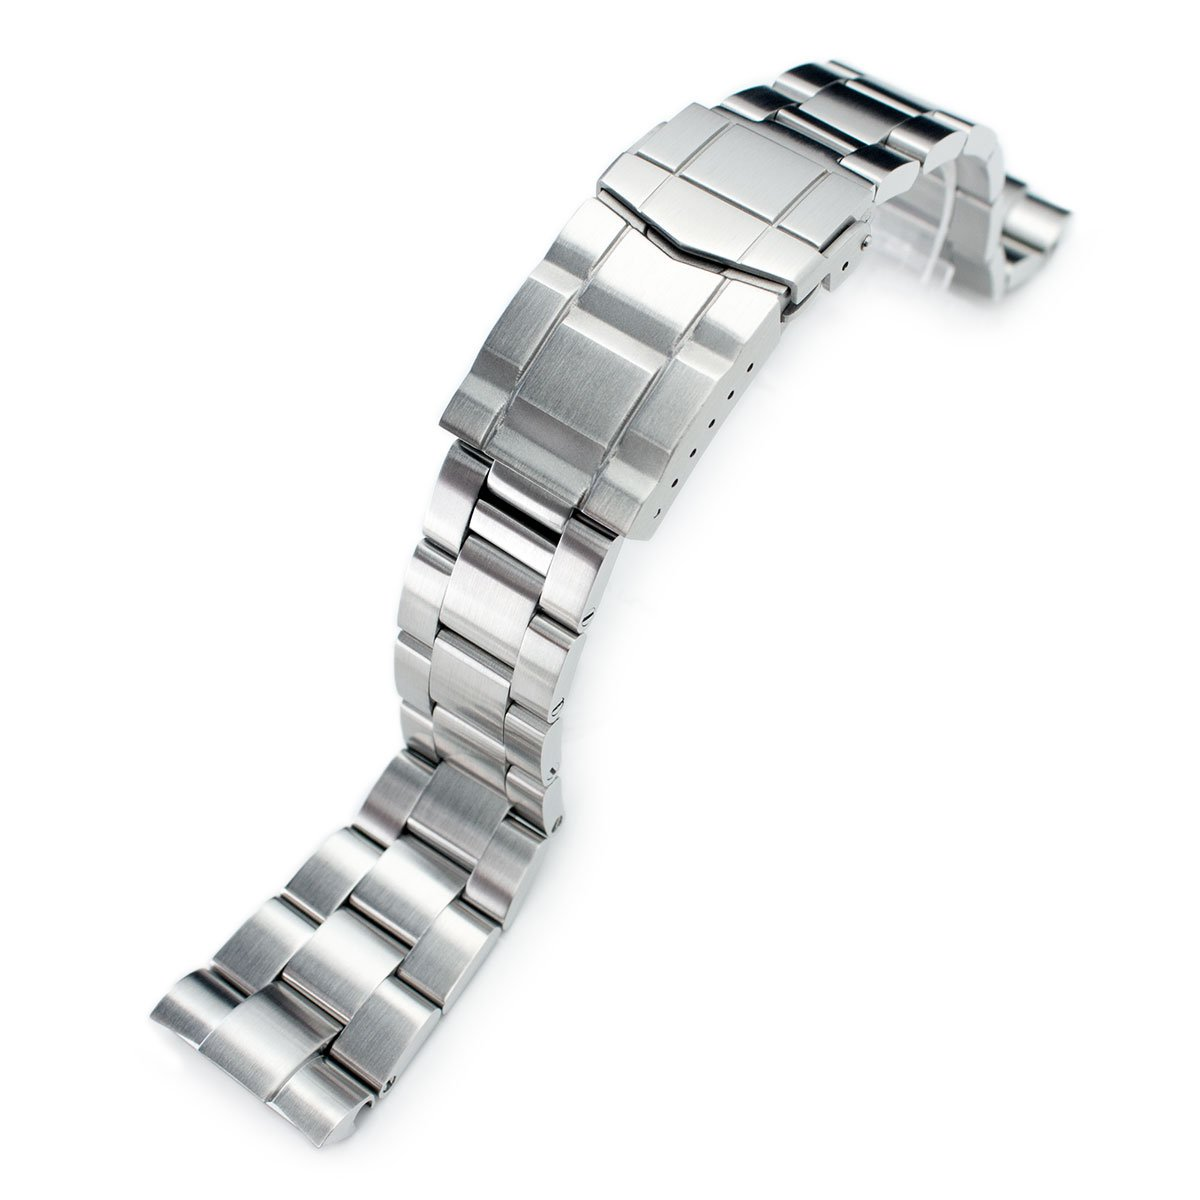 22mm Super 3D Oyster Watch Bracelet for Seiko New Turtles SRP775 SRP777 SRP779, Submariner